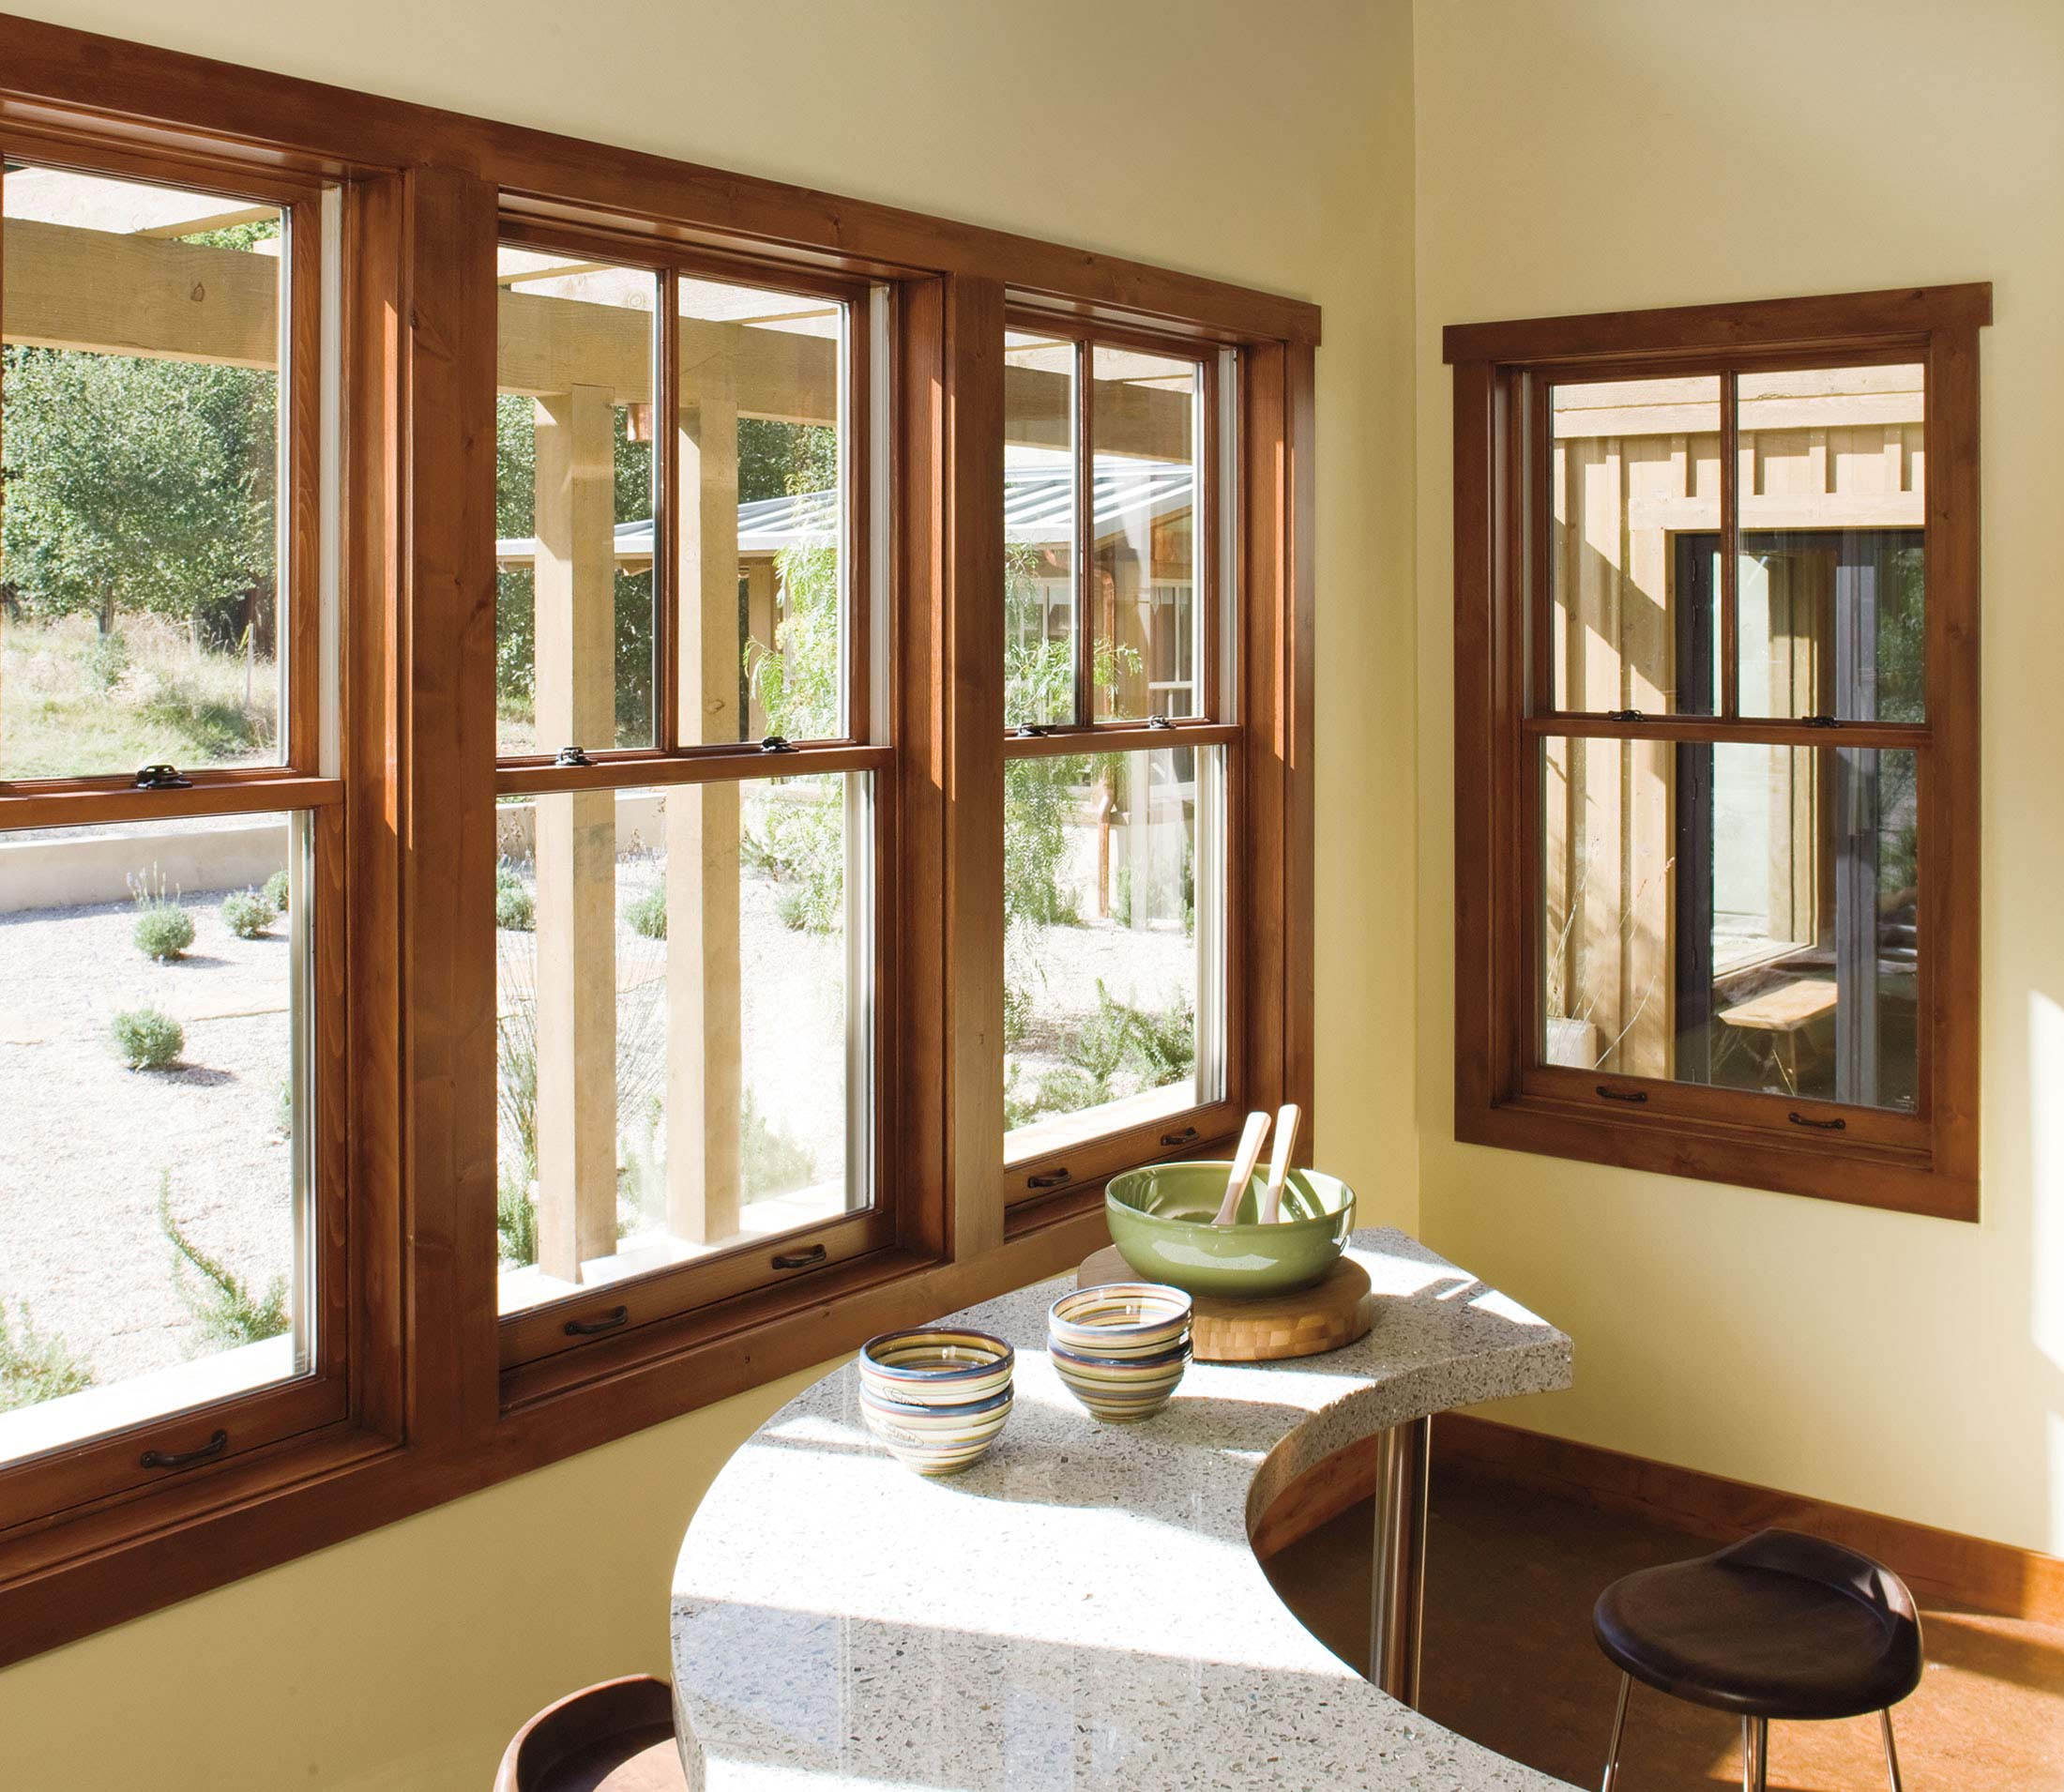 peru pella windows matched white wall plus bar table and wooden floor ideas